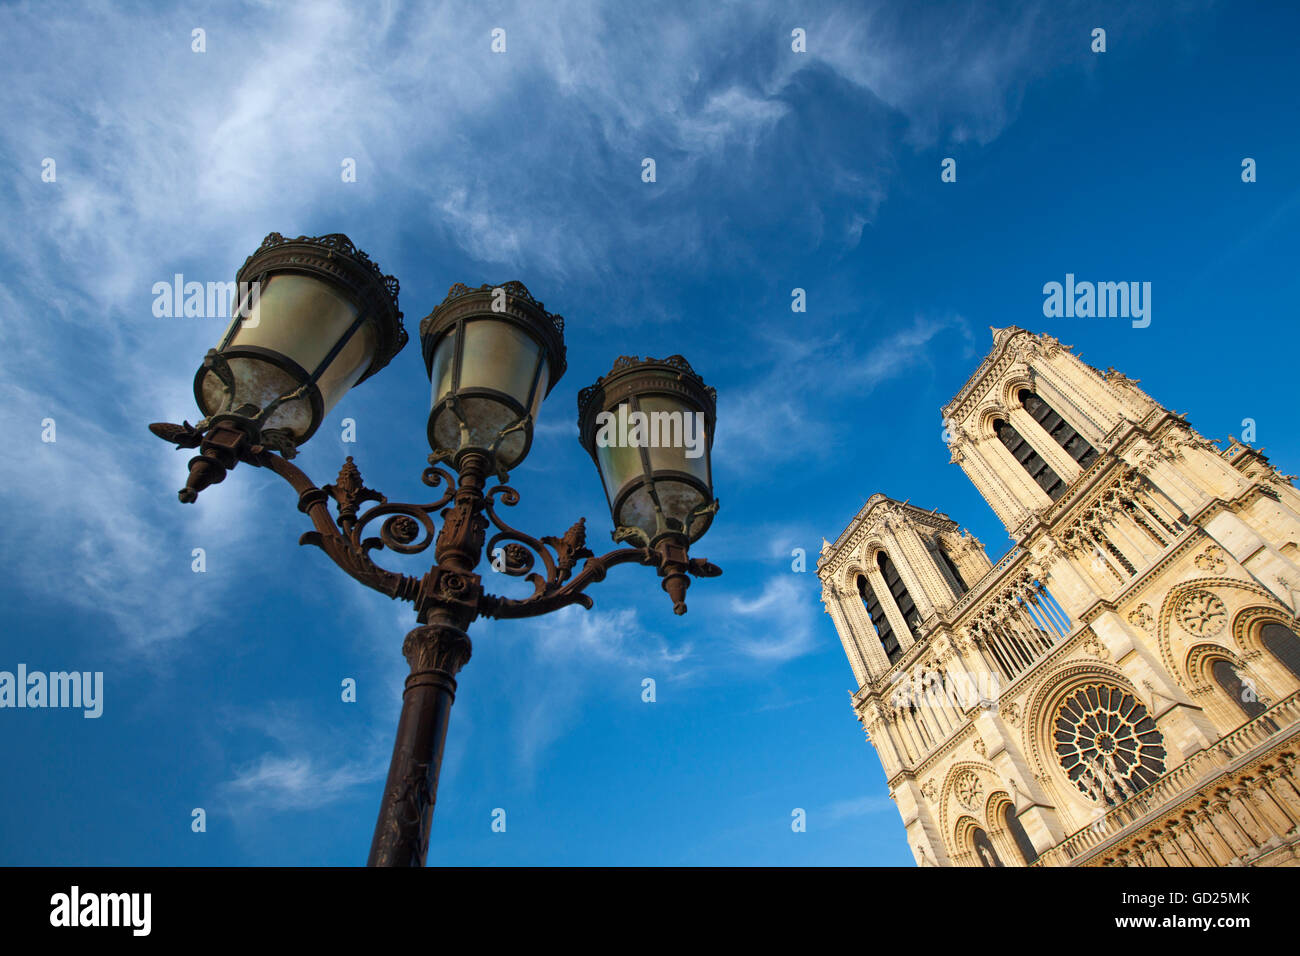 Notre Dame Cathedral, Paris, France, Europe - Stock Image